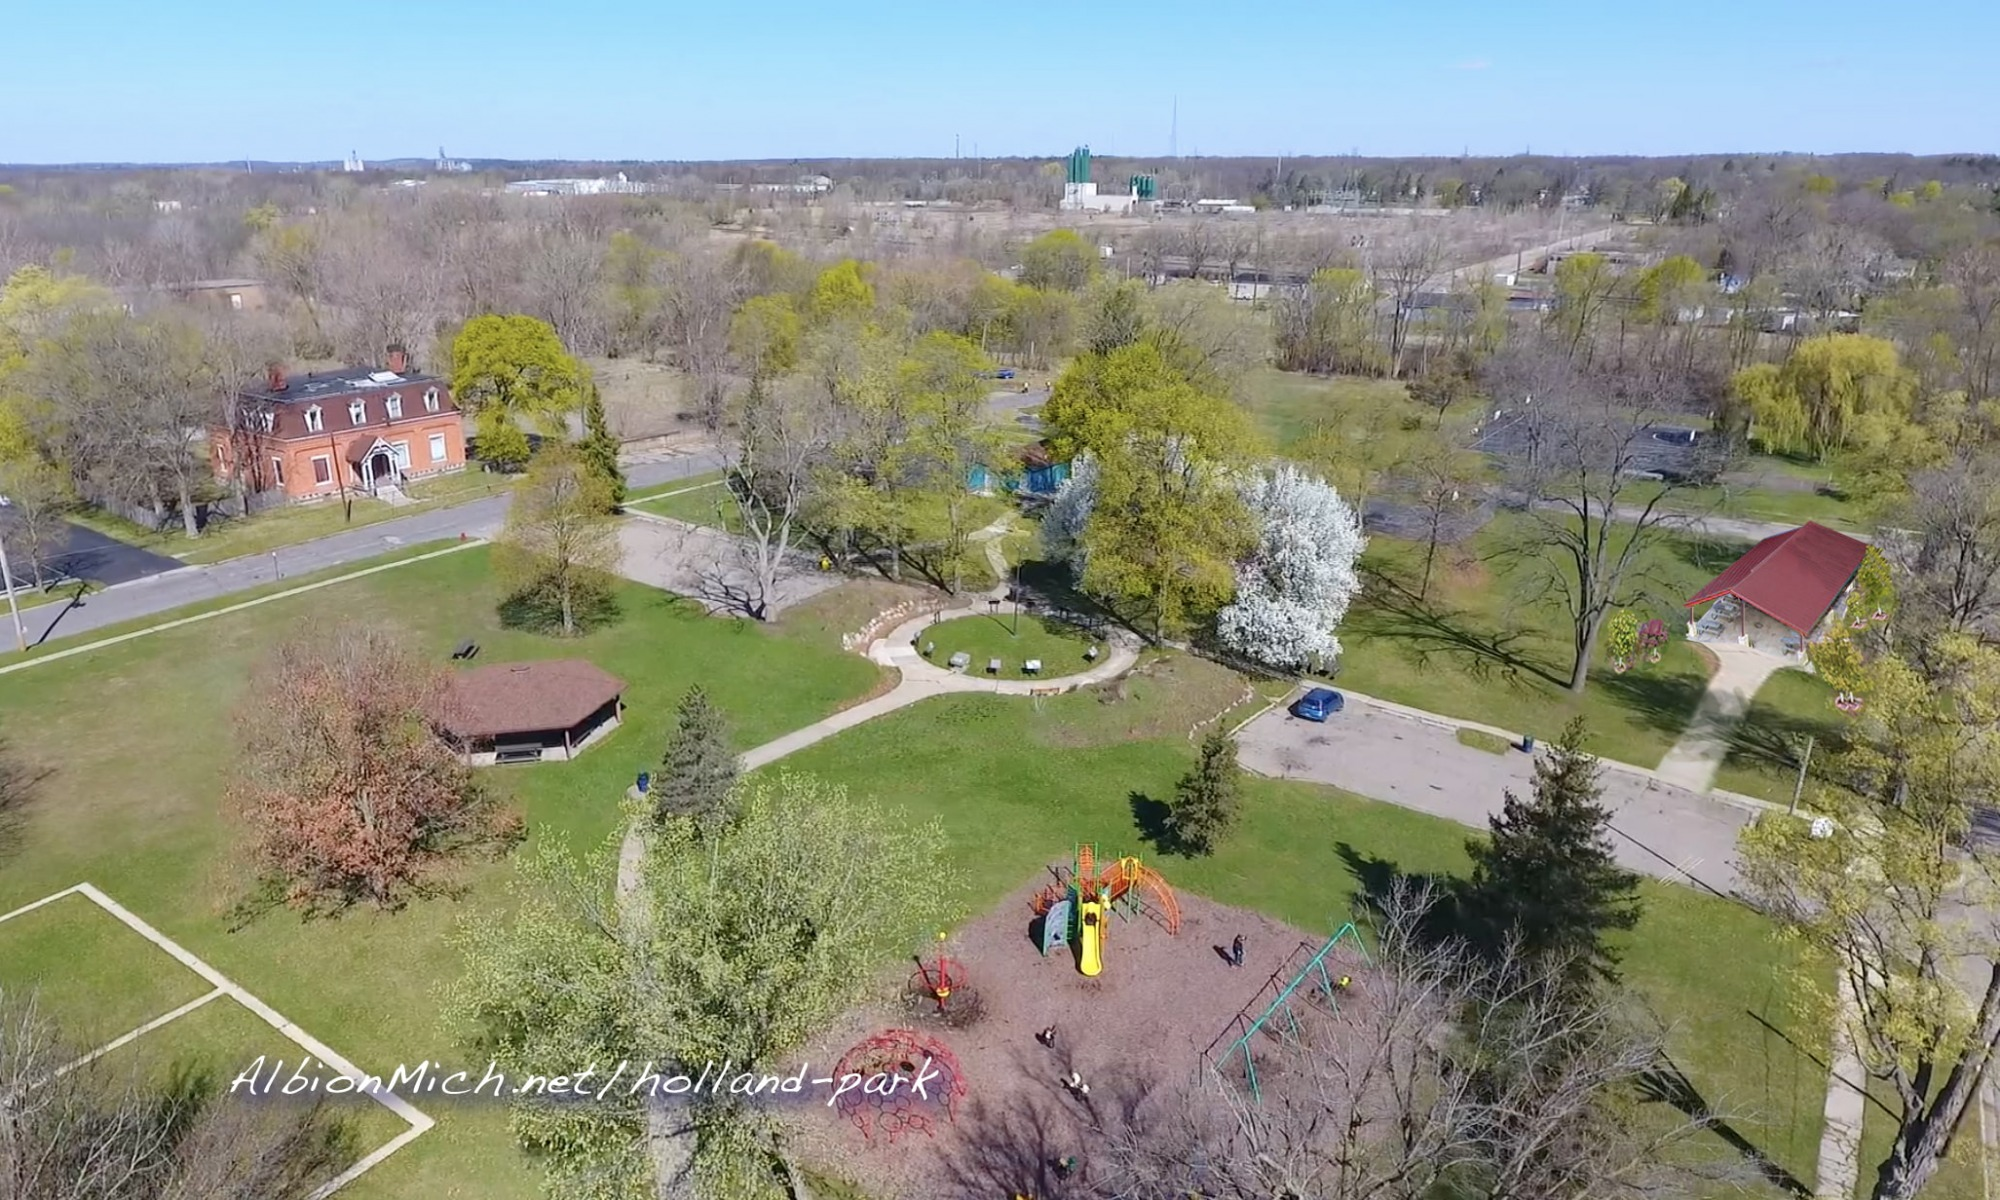 Albion, Michigan - General Guide to the Community